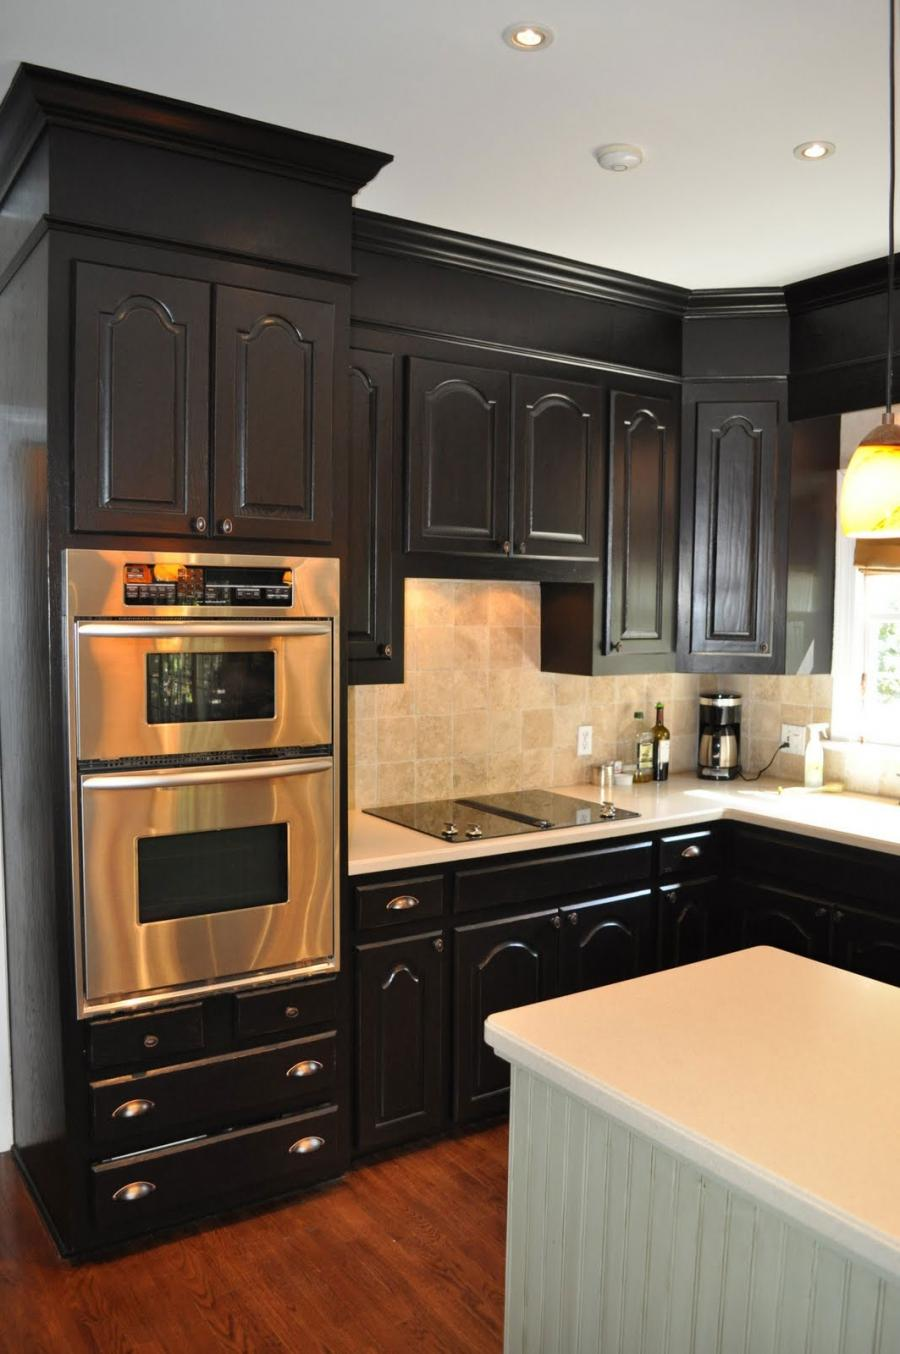 Black Kitchen Cabinets For Fancy Kitchen Design : Classy Black...